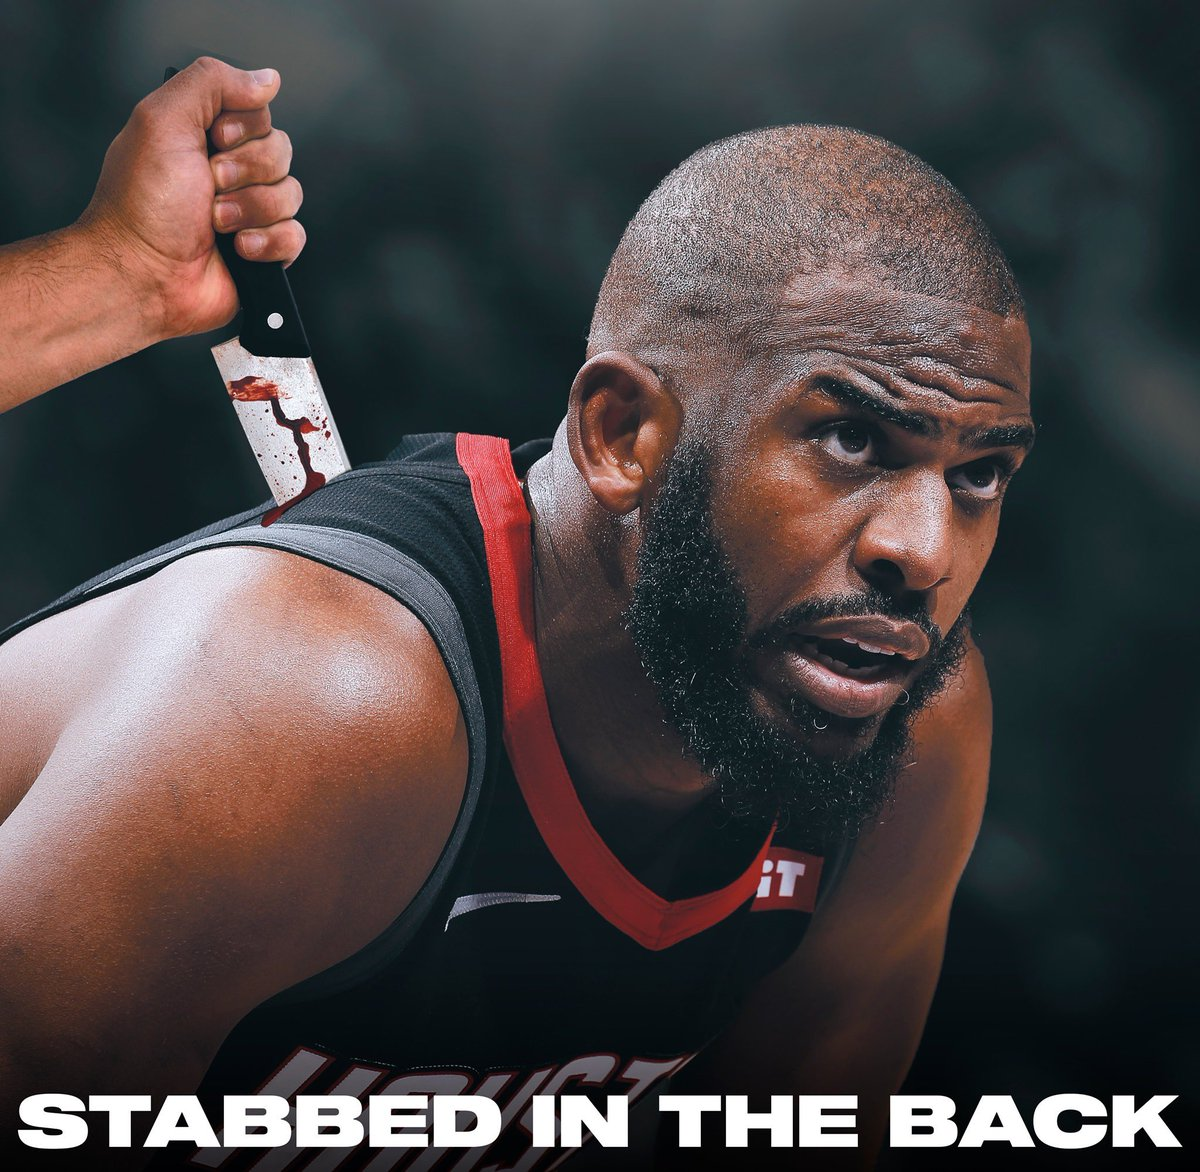 Chris Paul says the Houston Rockets stabbed him in the back when they traded him over the summer. pic.twitter.com/6JuEGKkjUS